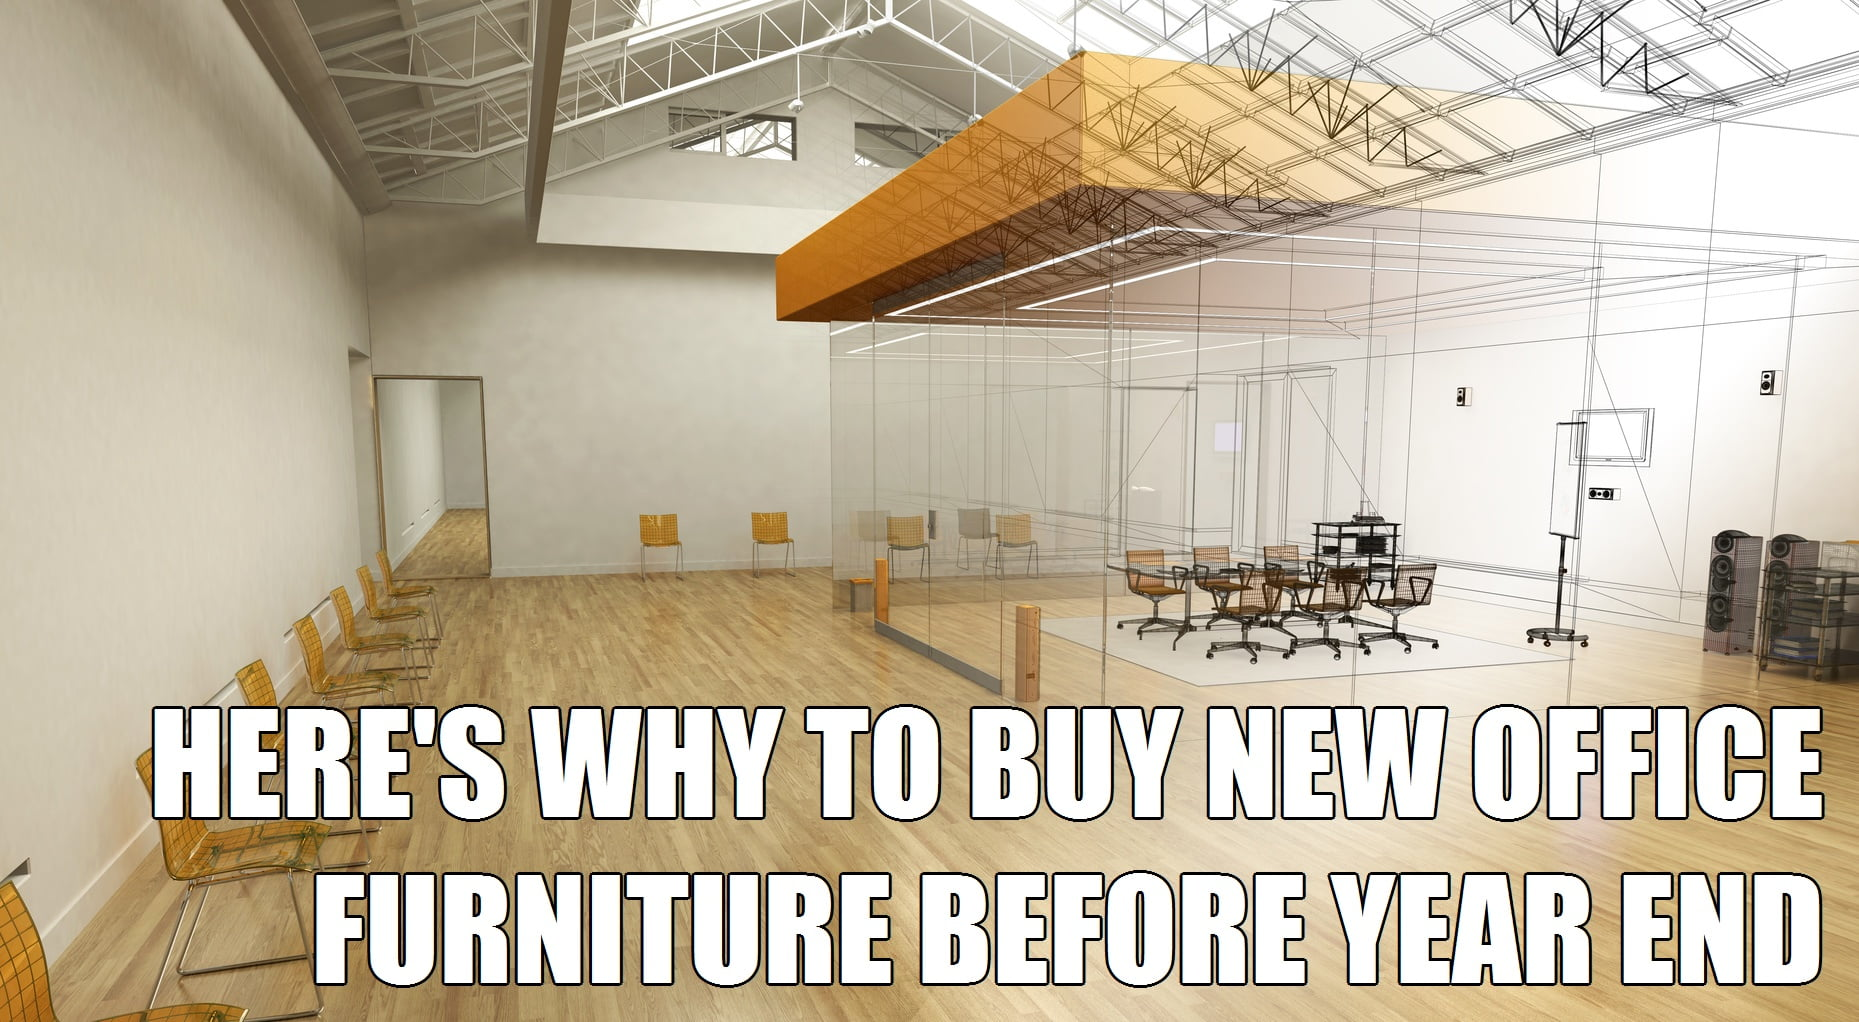 Here is why to buy new office furniture before year end